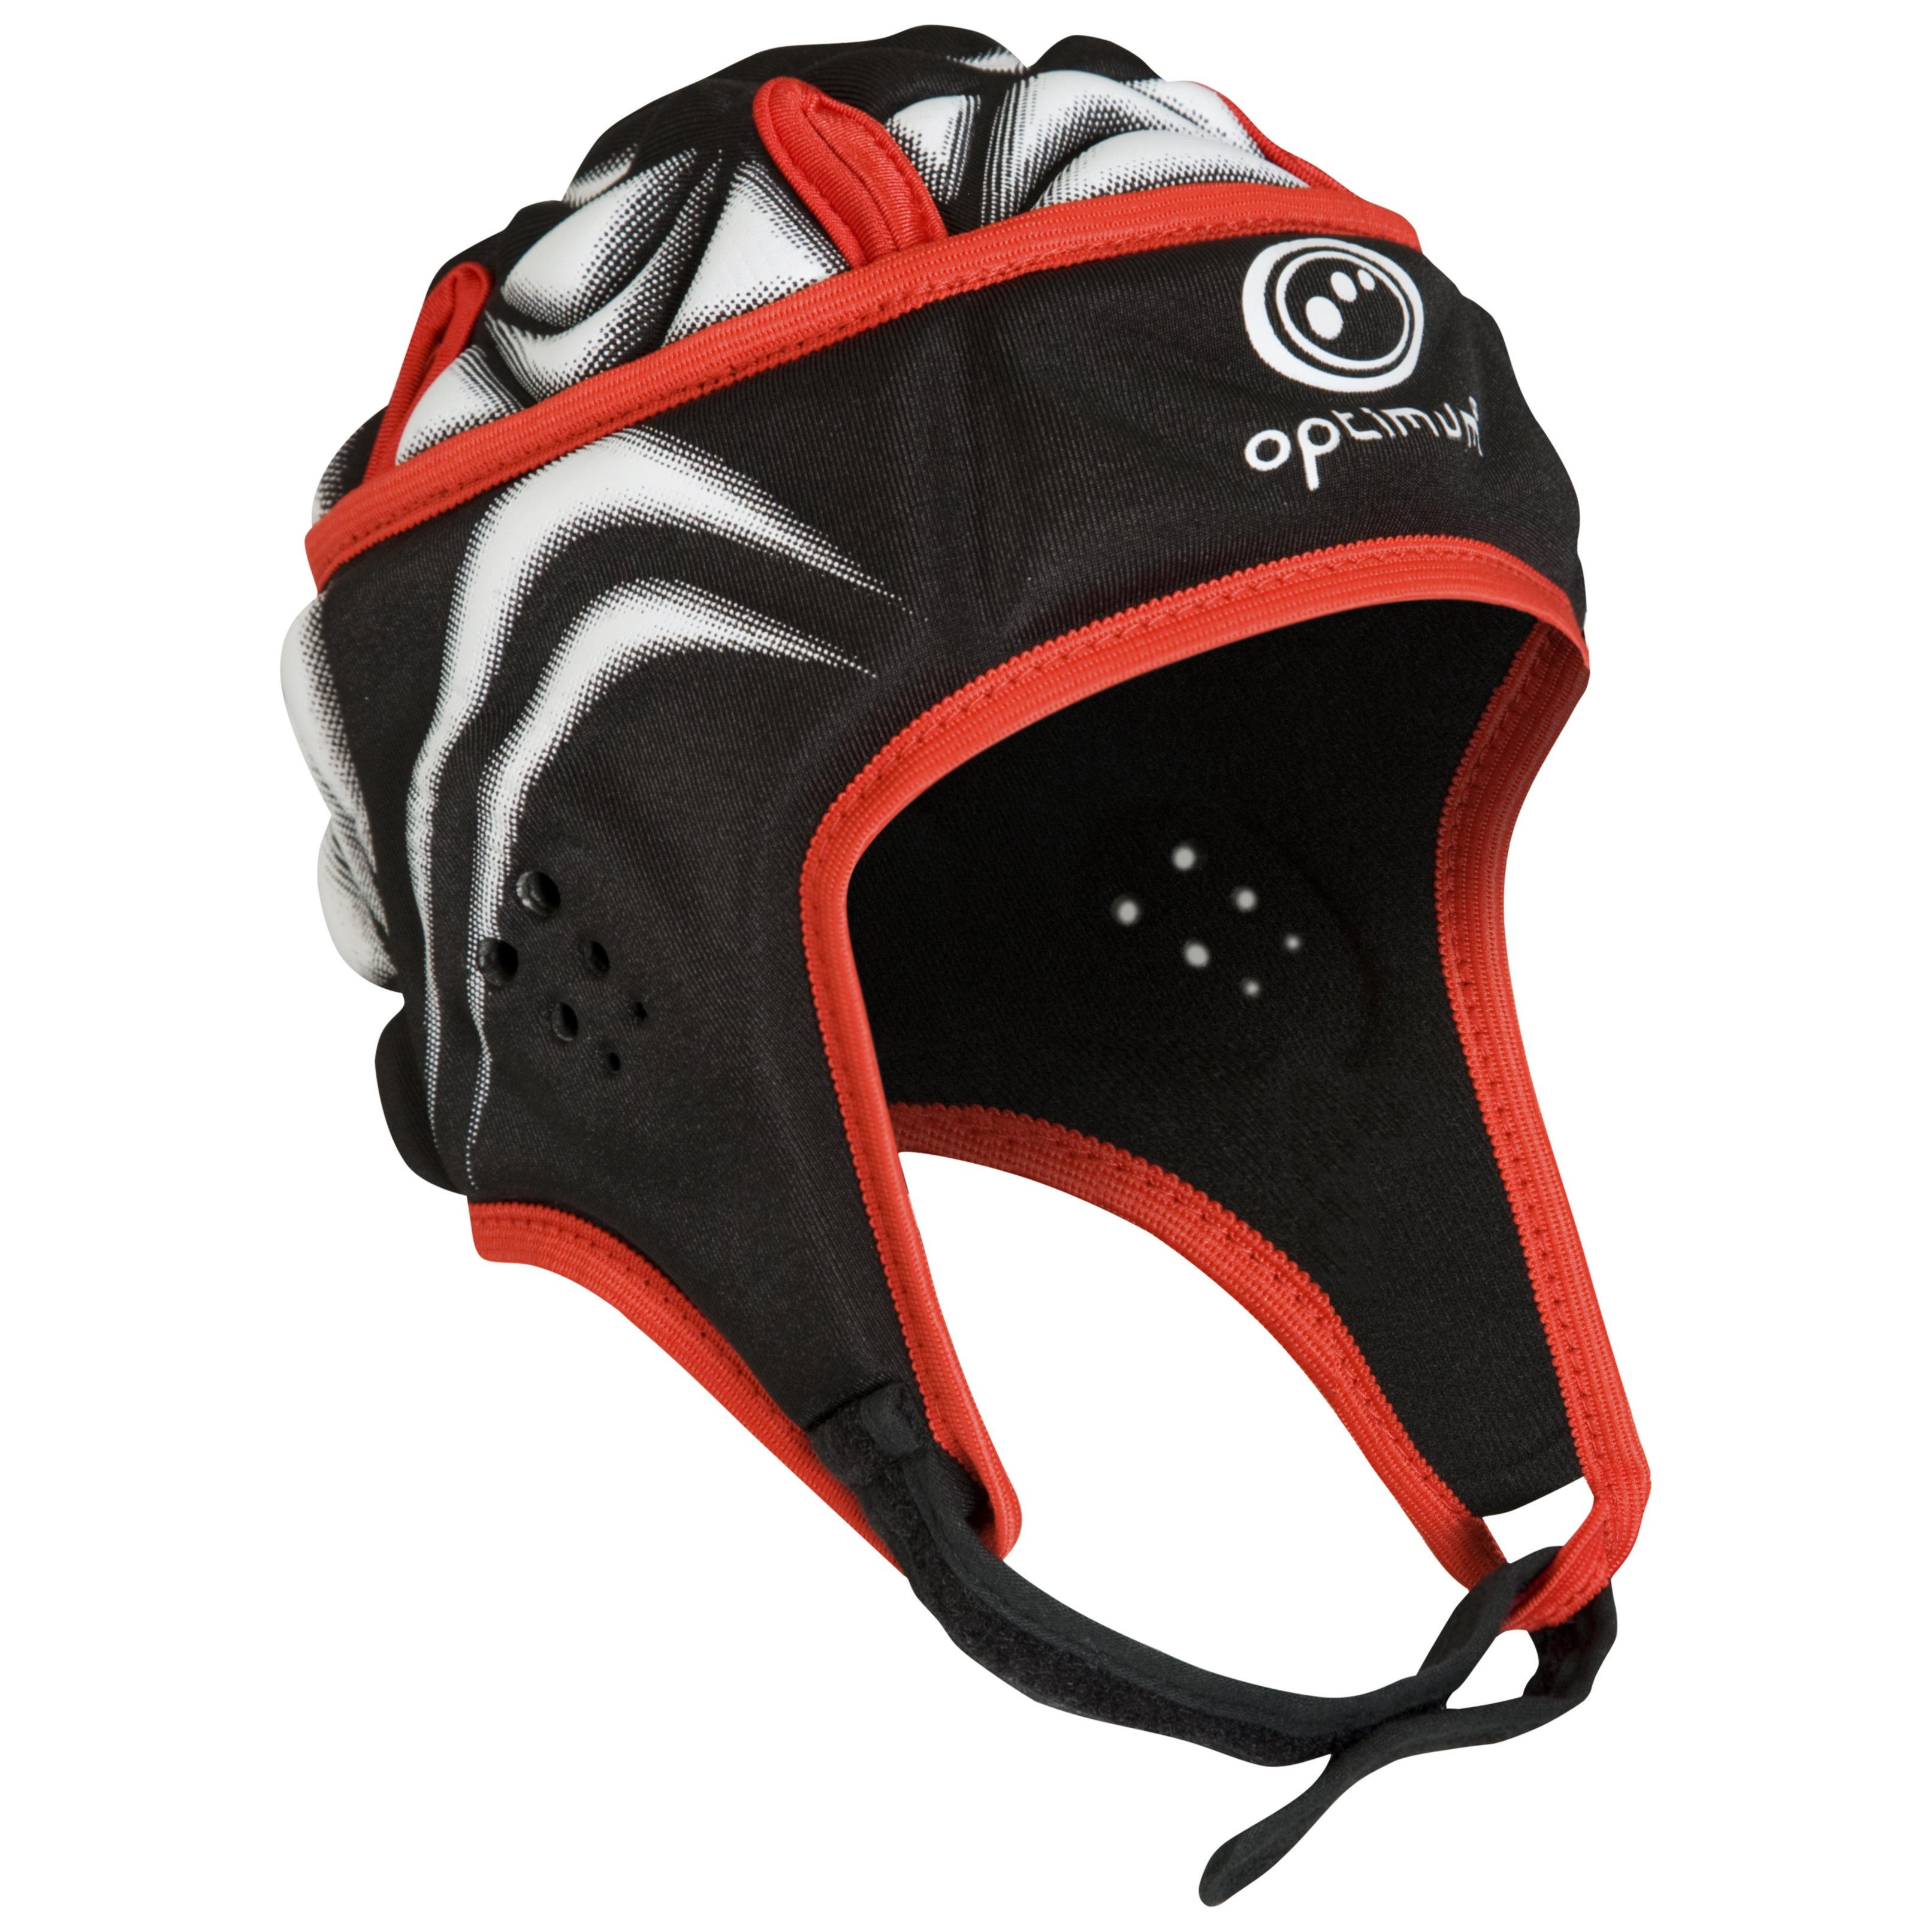 Optimum Blitz Extreme Headguard - Black/Red/White - Boys